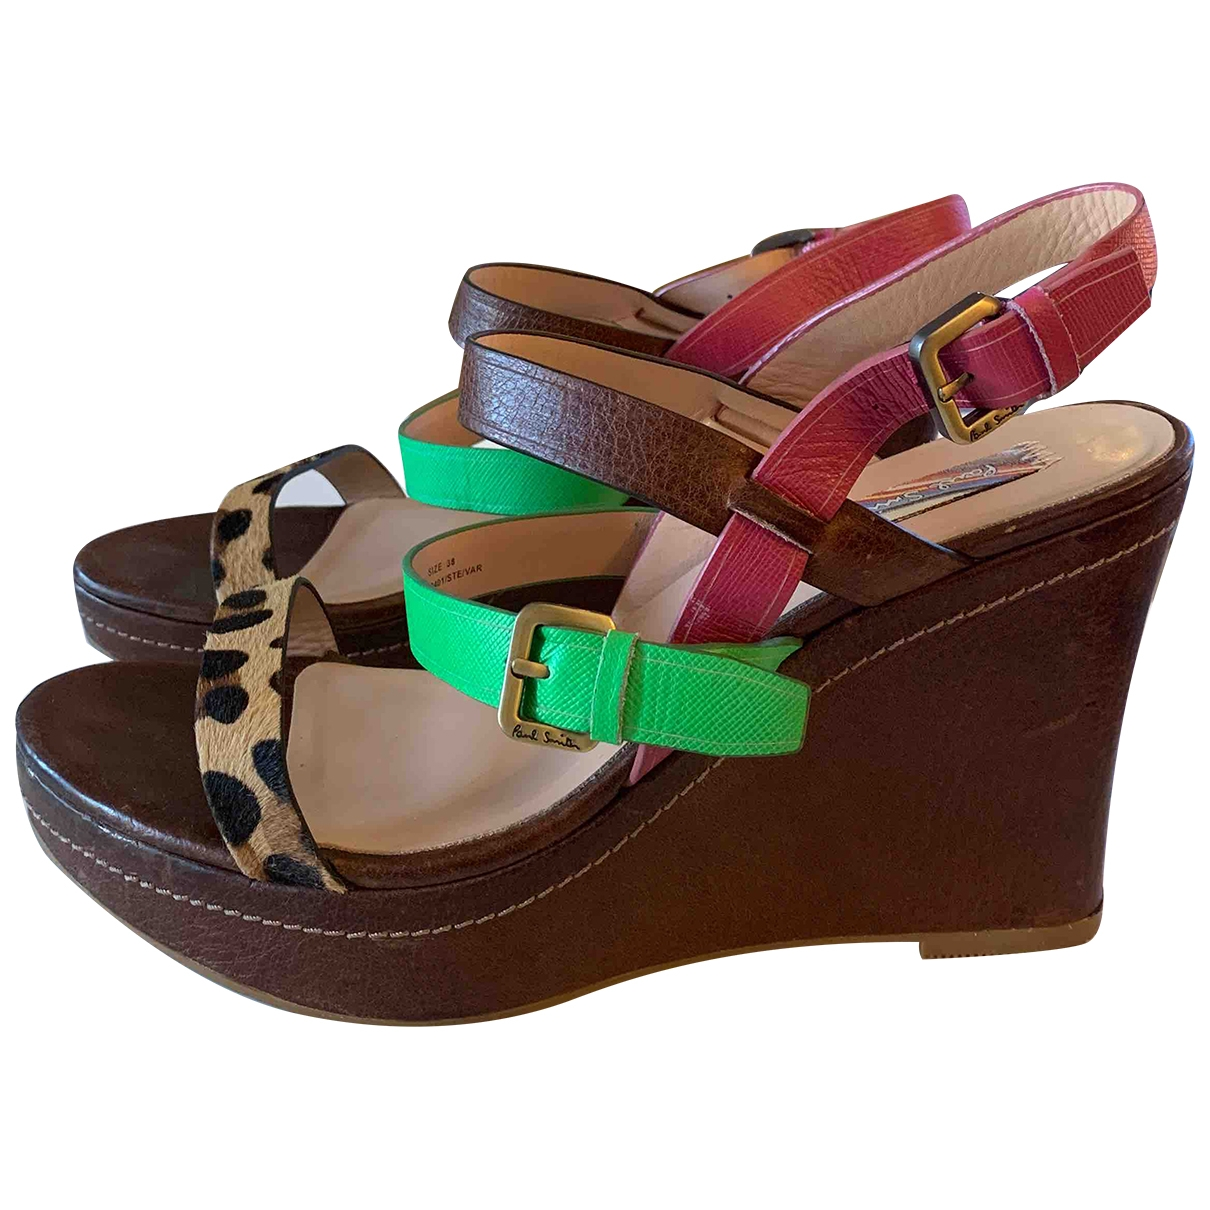 Paul Smith \N Brown Leather Sandals for Women 38 EU